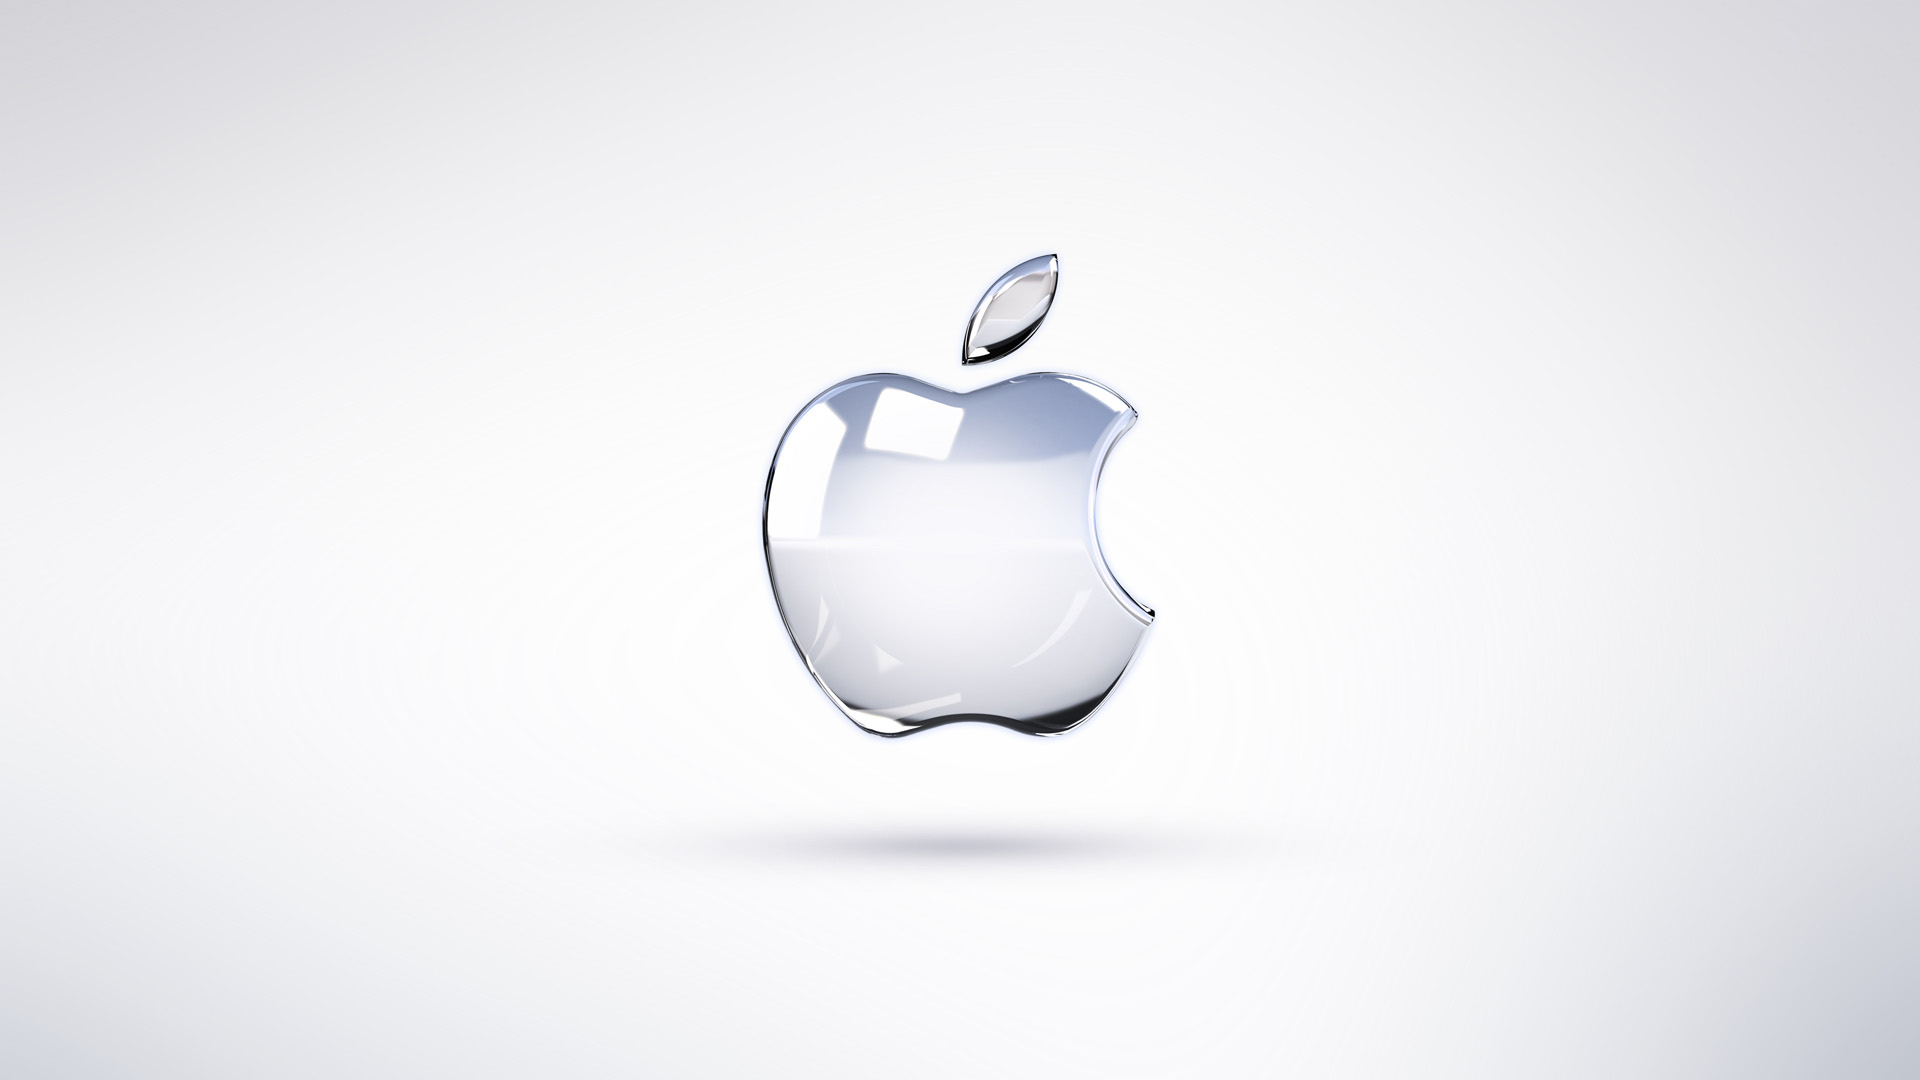 3D Mac Wallpaper